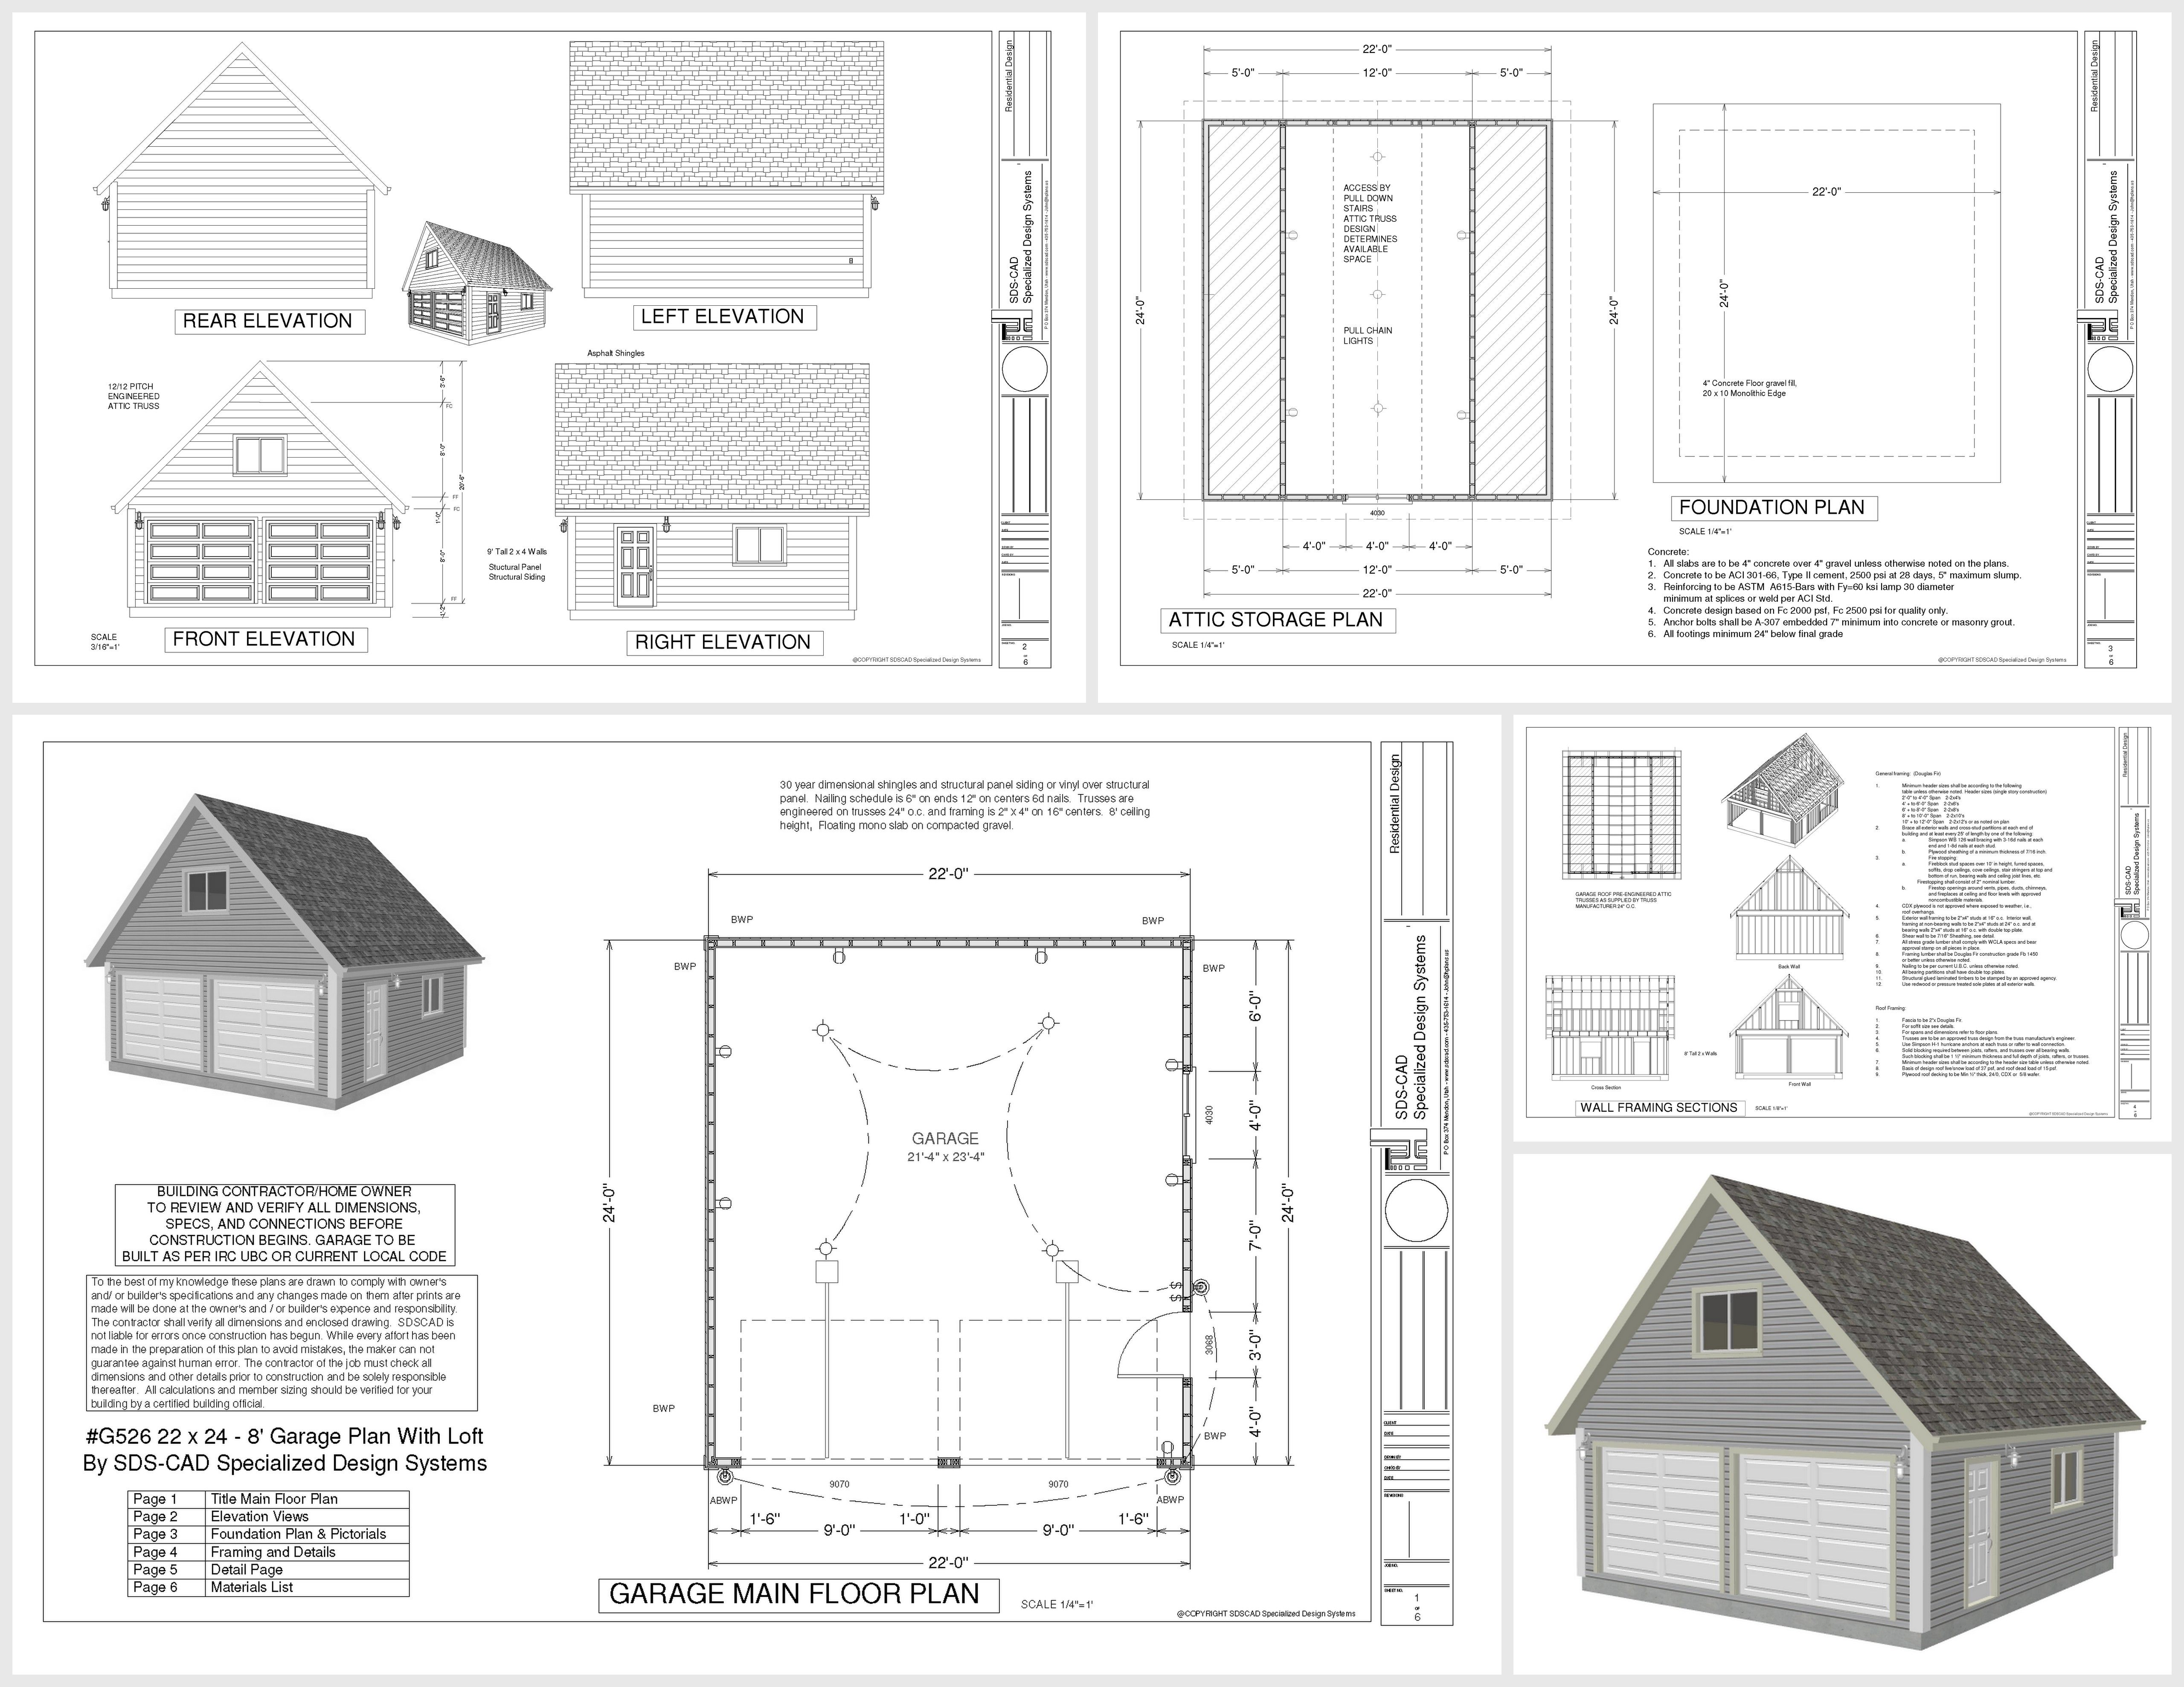 G526 22 X 24 8 Garage Plan With Loft Dwg And Pdf Dream Home